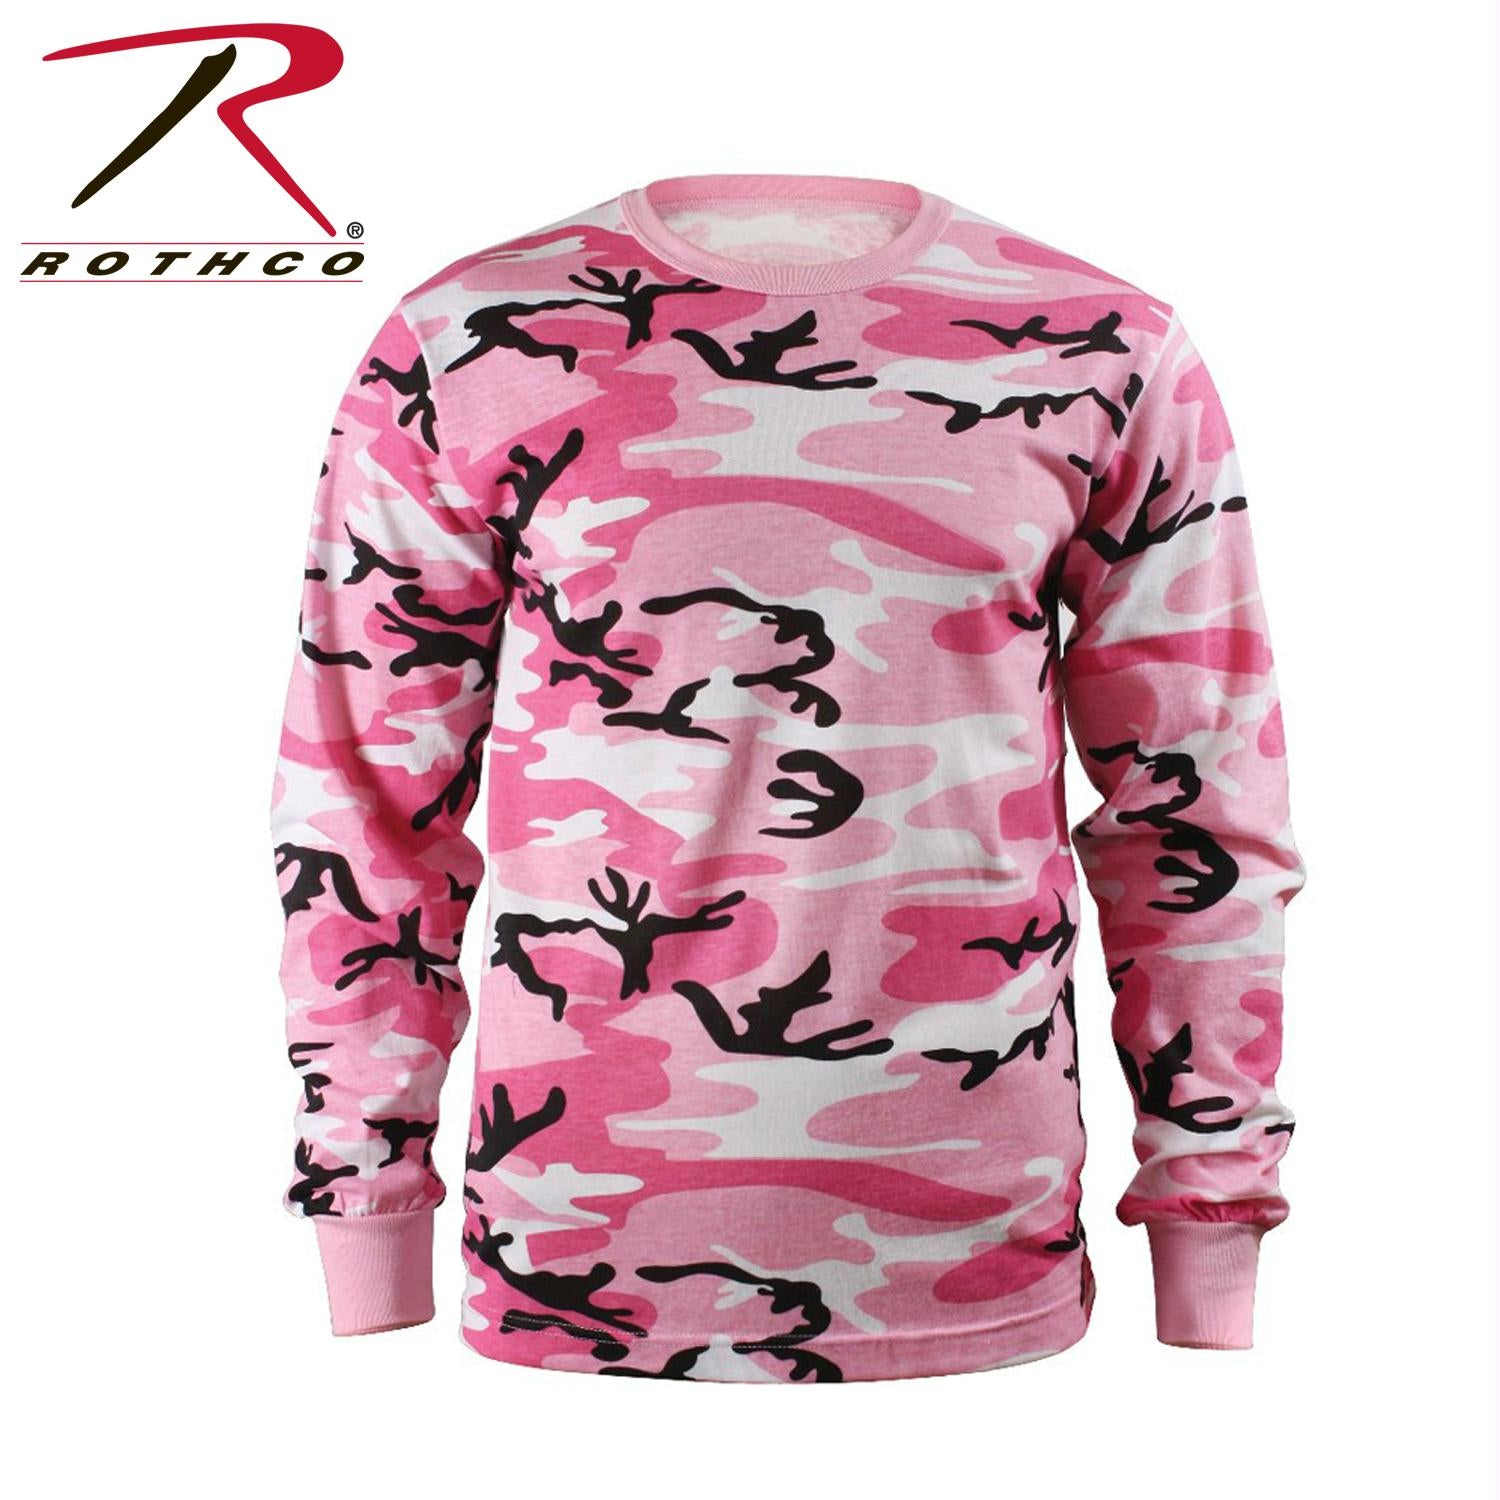 Rothco Long Sleeve Colored Camo T-Shirt - Pink Camo / L